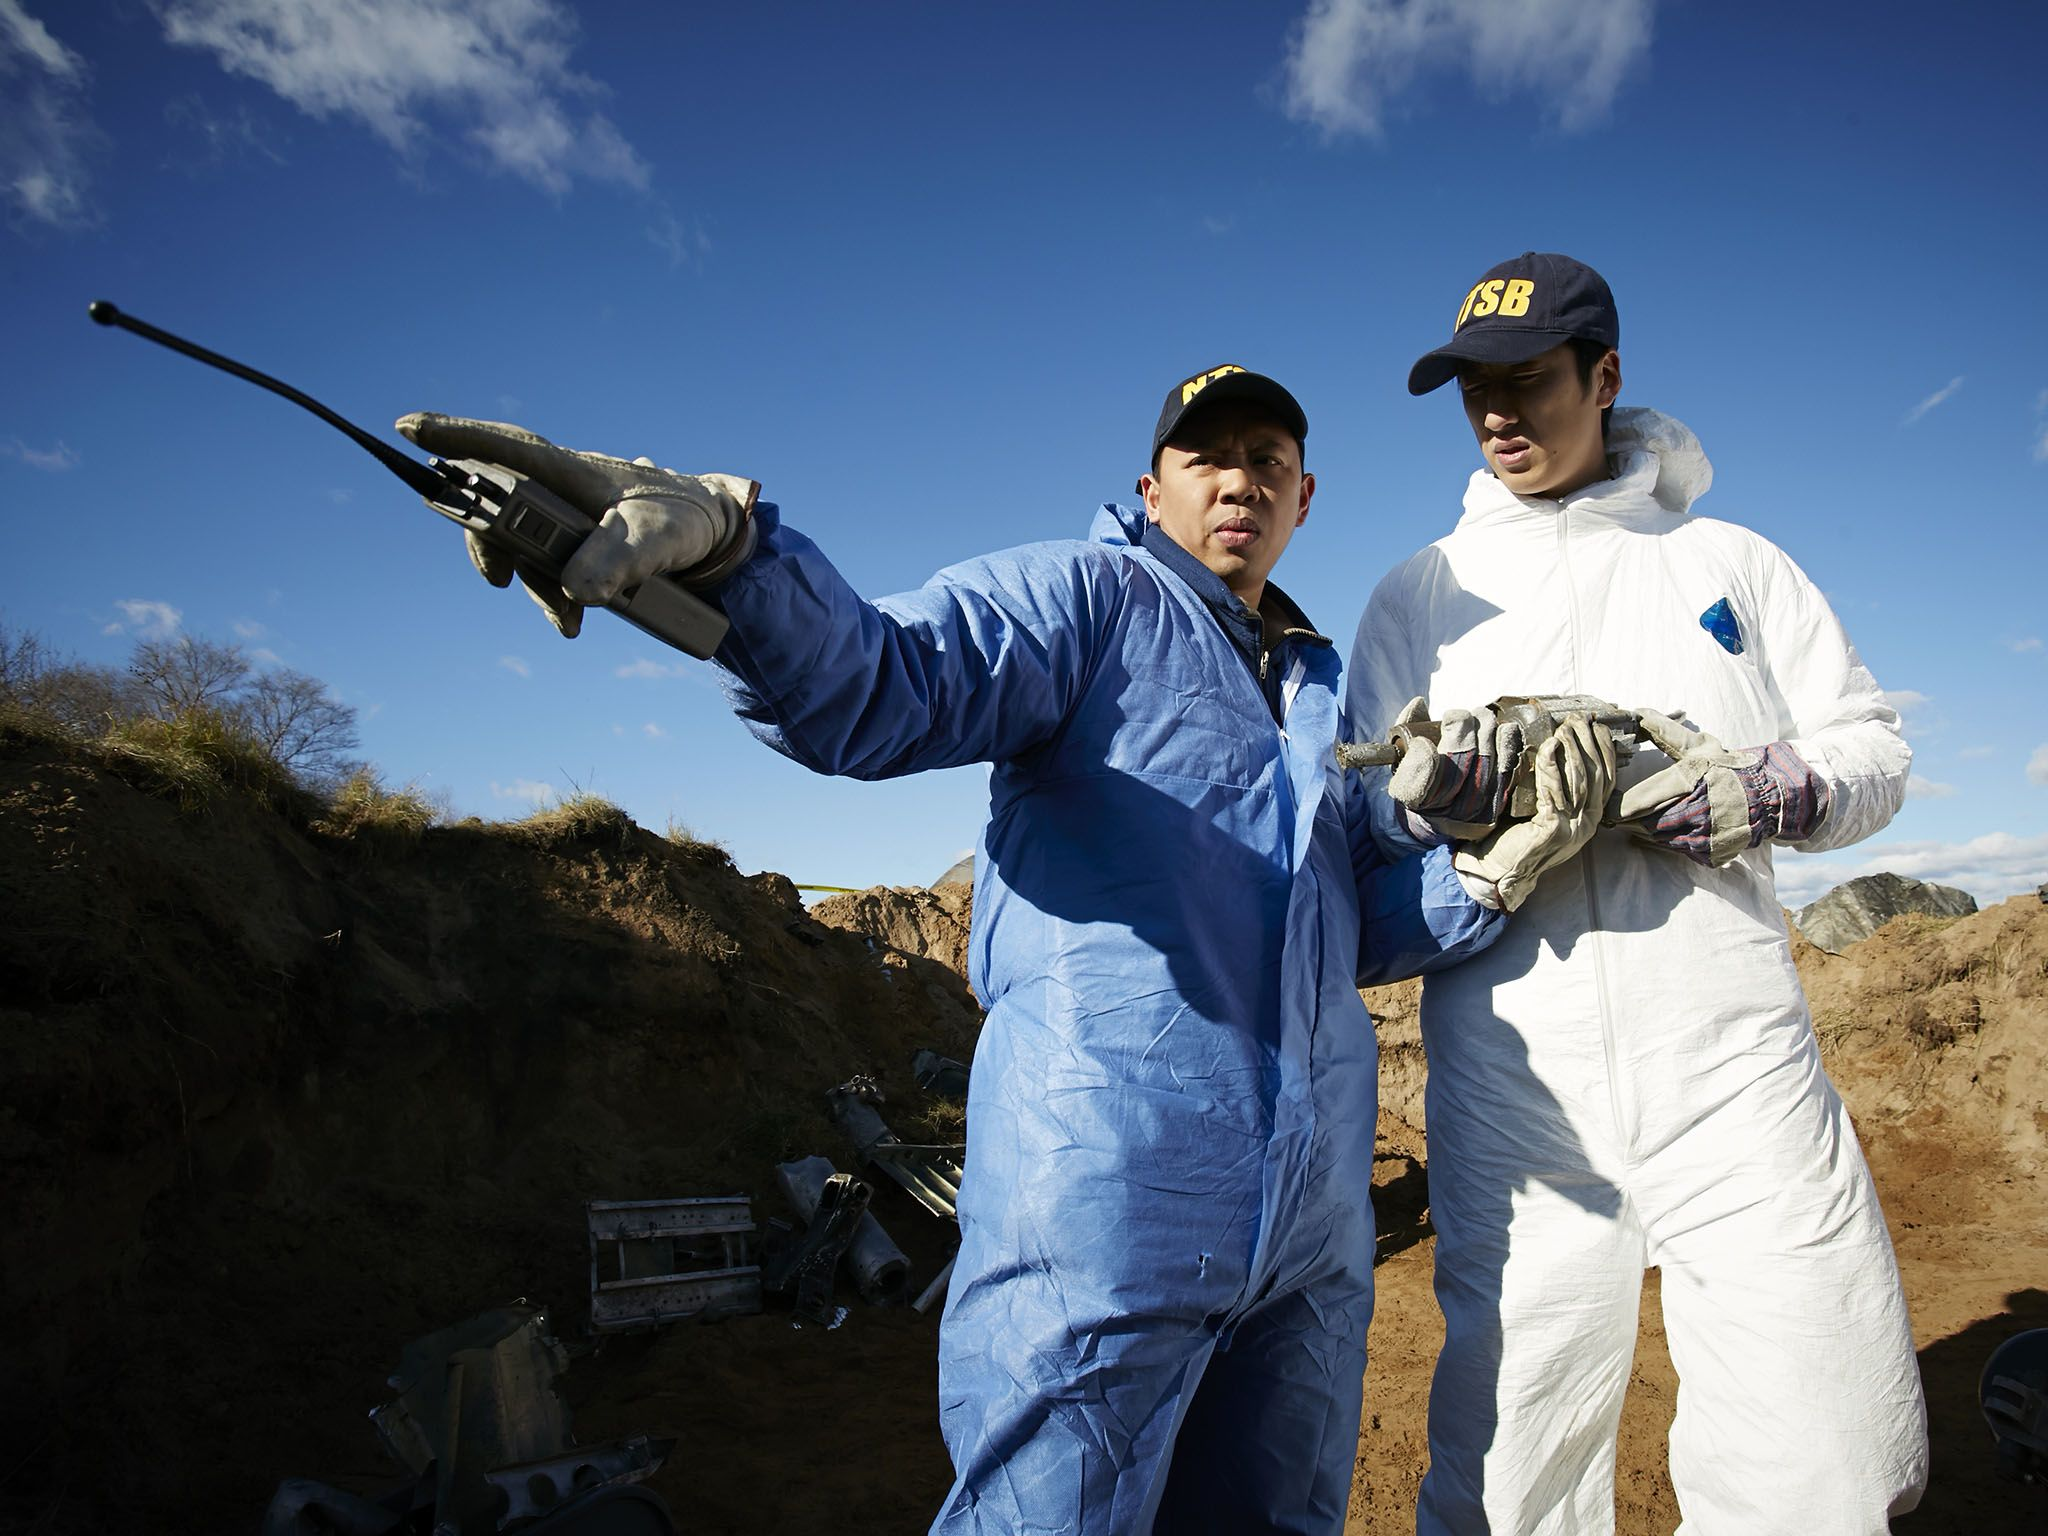 Reenactment: NTSB Investigator (played by Byron Abalos) and another investigator stand in the... [Photo of the day - می 2016]